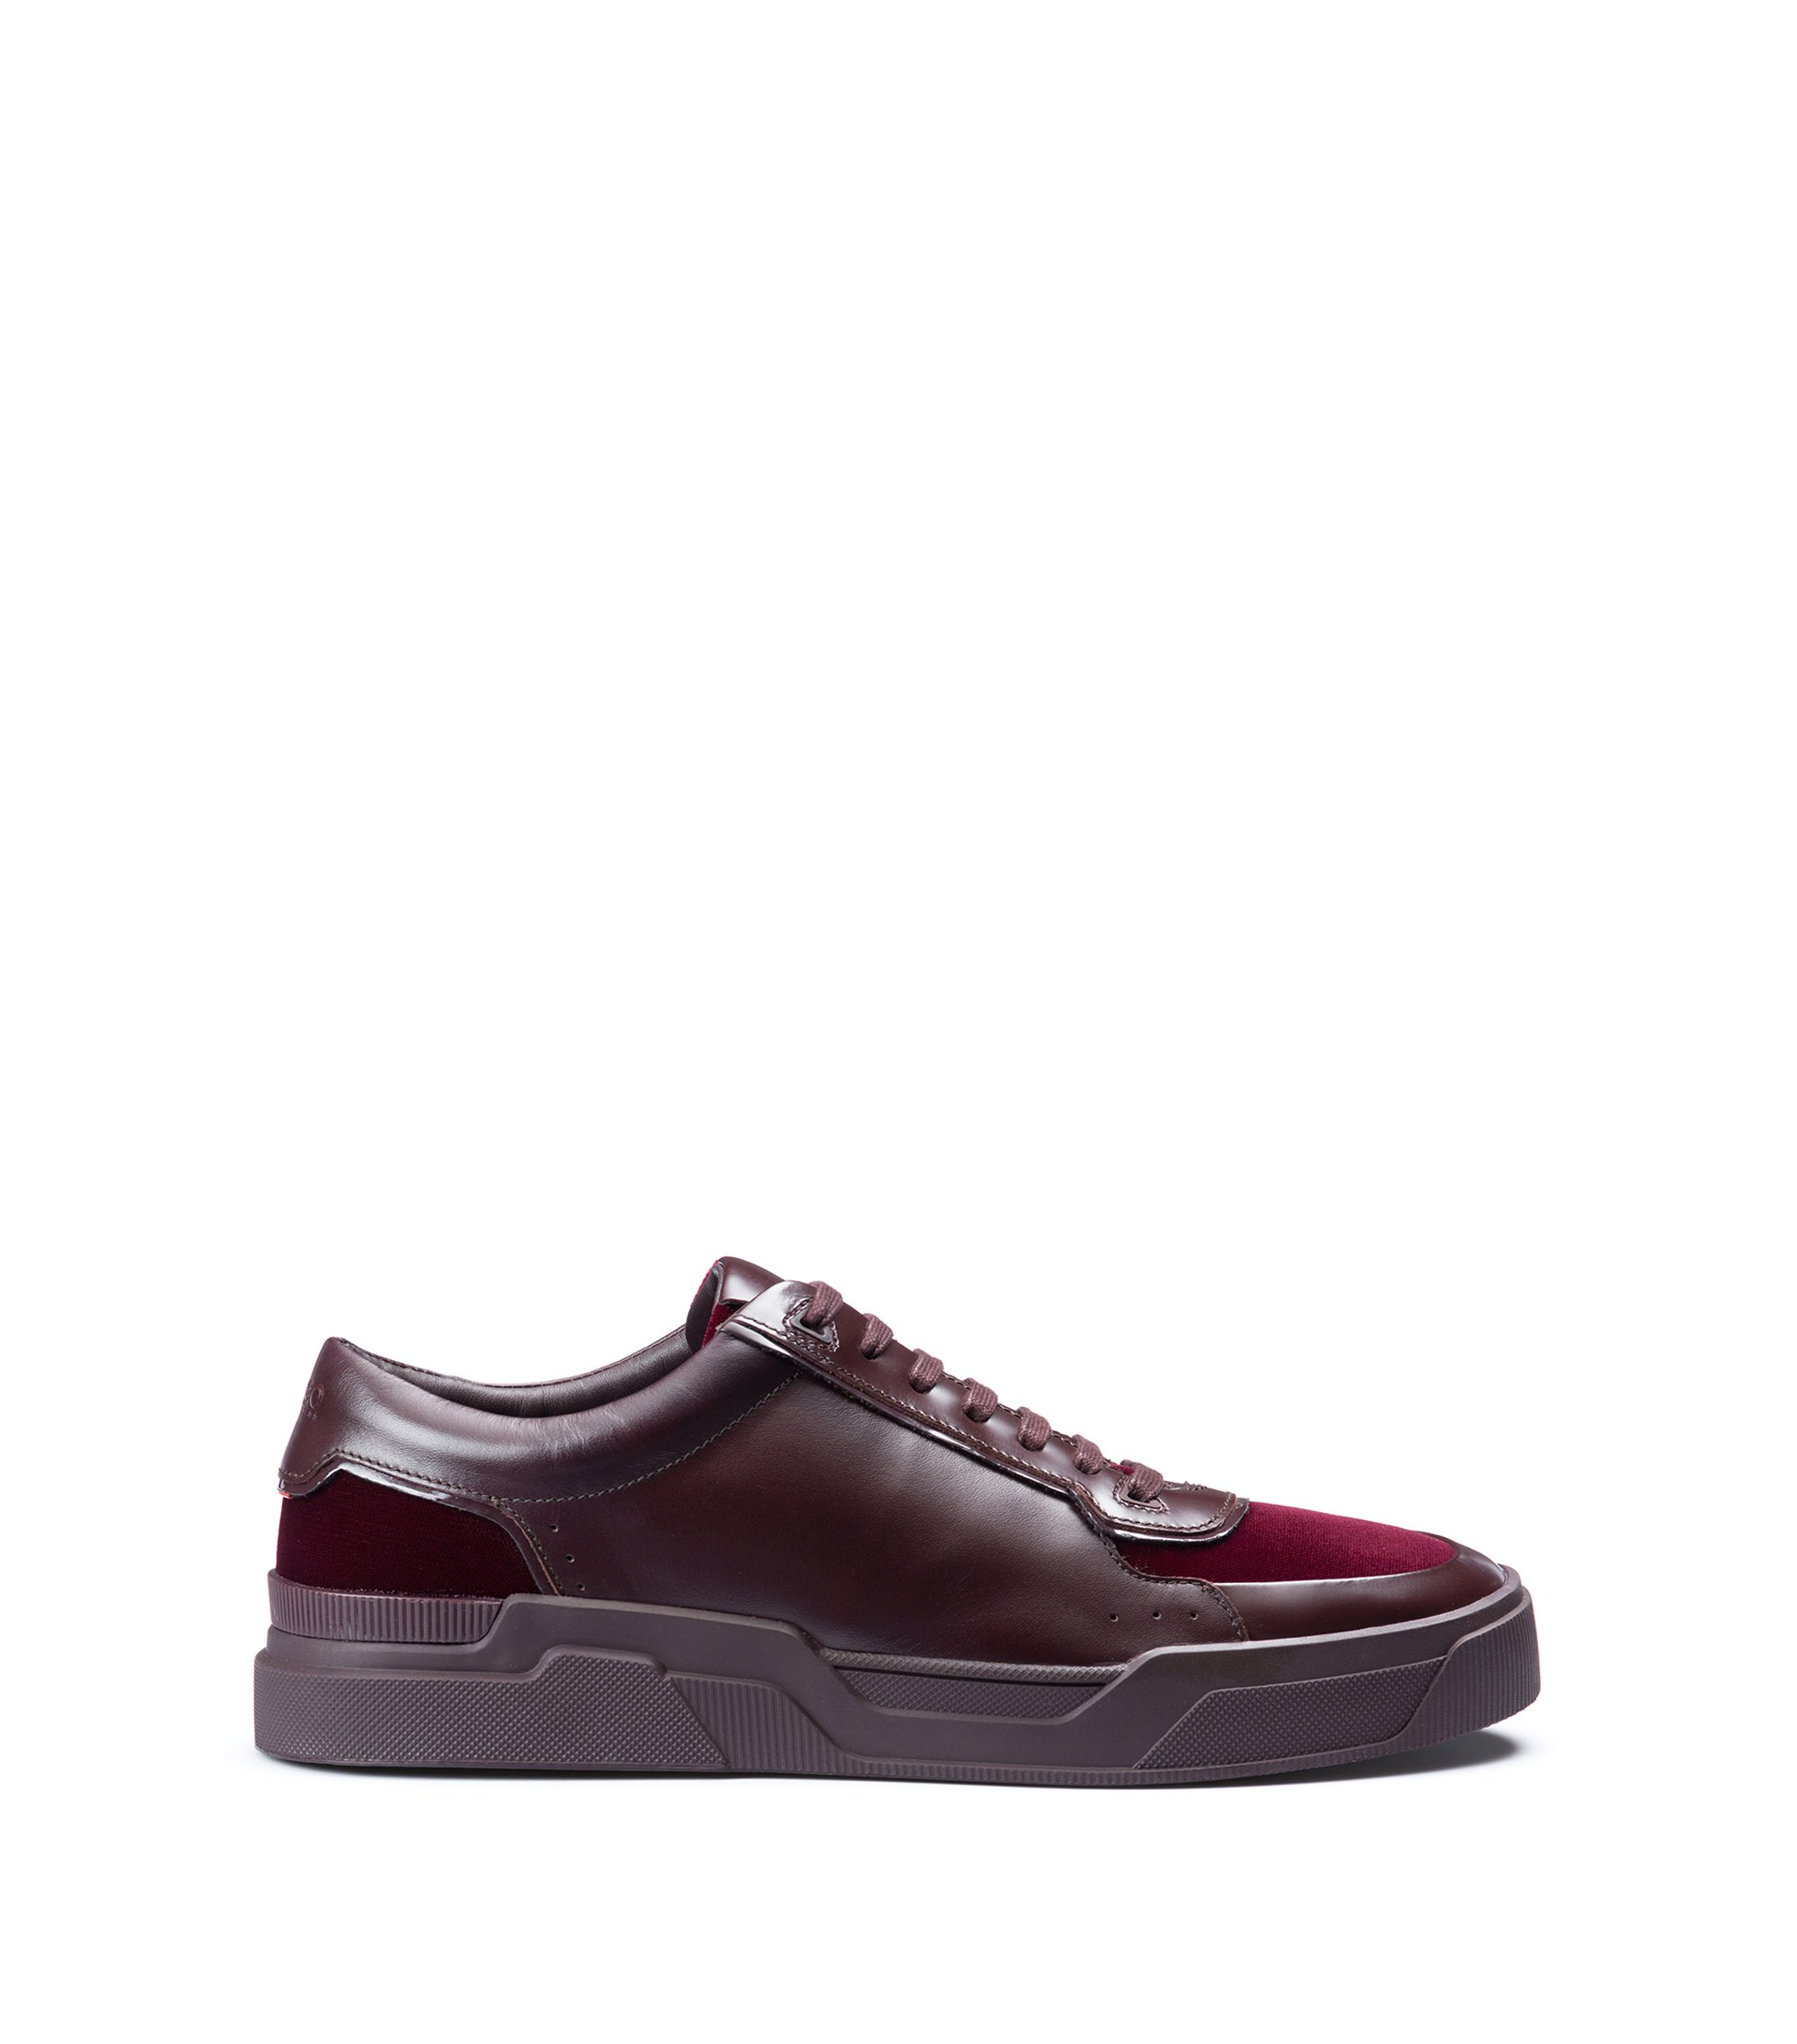 Nappa Leather & Italian Velvet Sneaker | Symmetric Tenn Itvlt, Dark Red